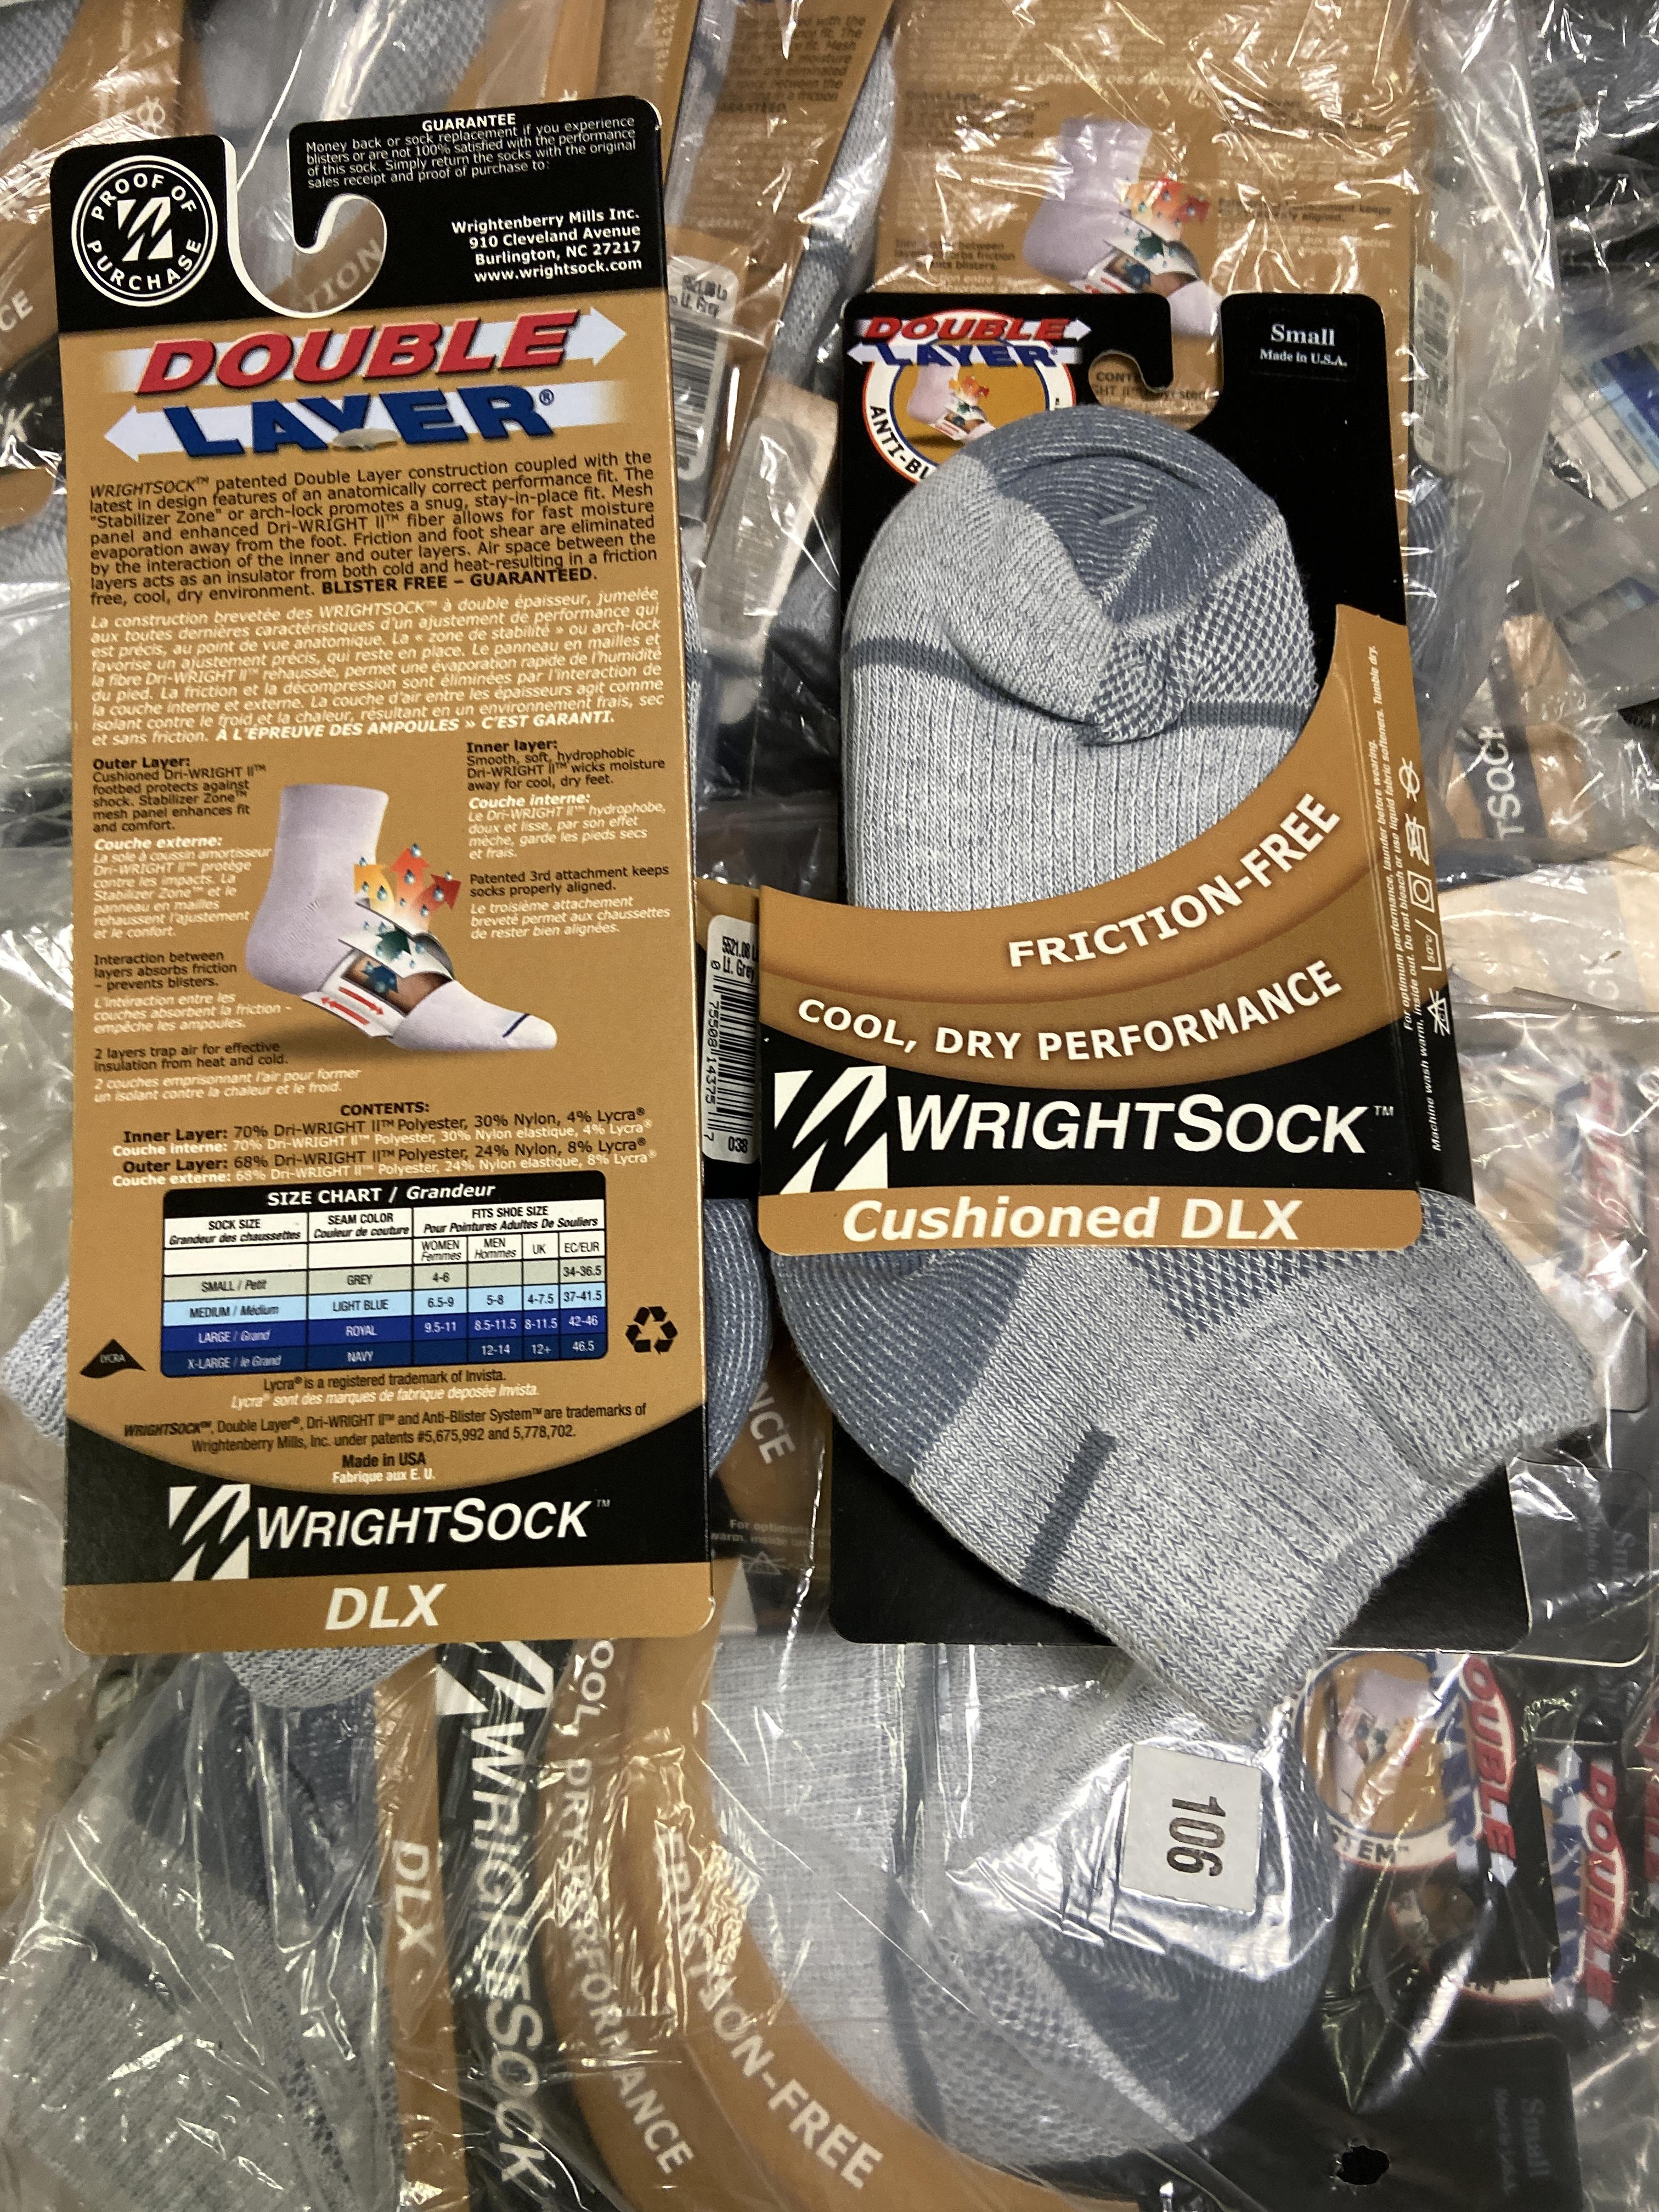 Lot 34 - 250+ packs of New Socks, Wrightsocks Cushioned DLX, Gray Lot includes approximately 250 packs of